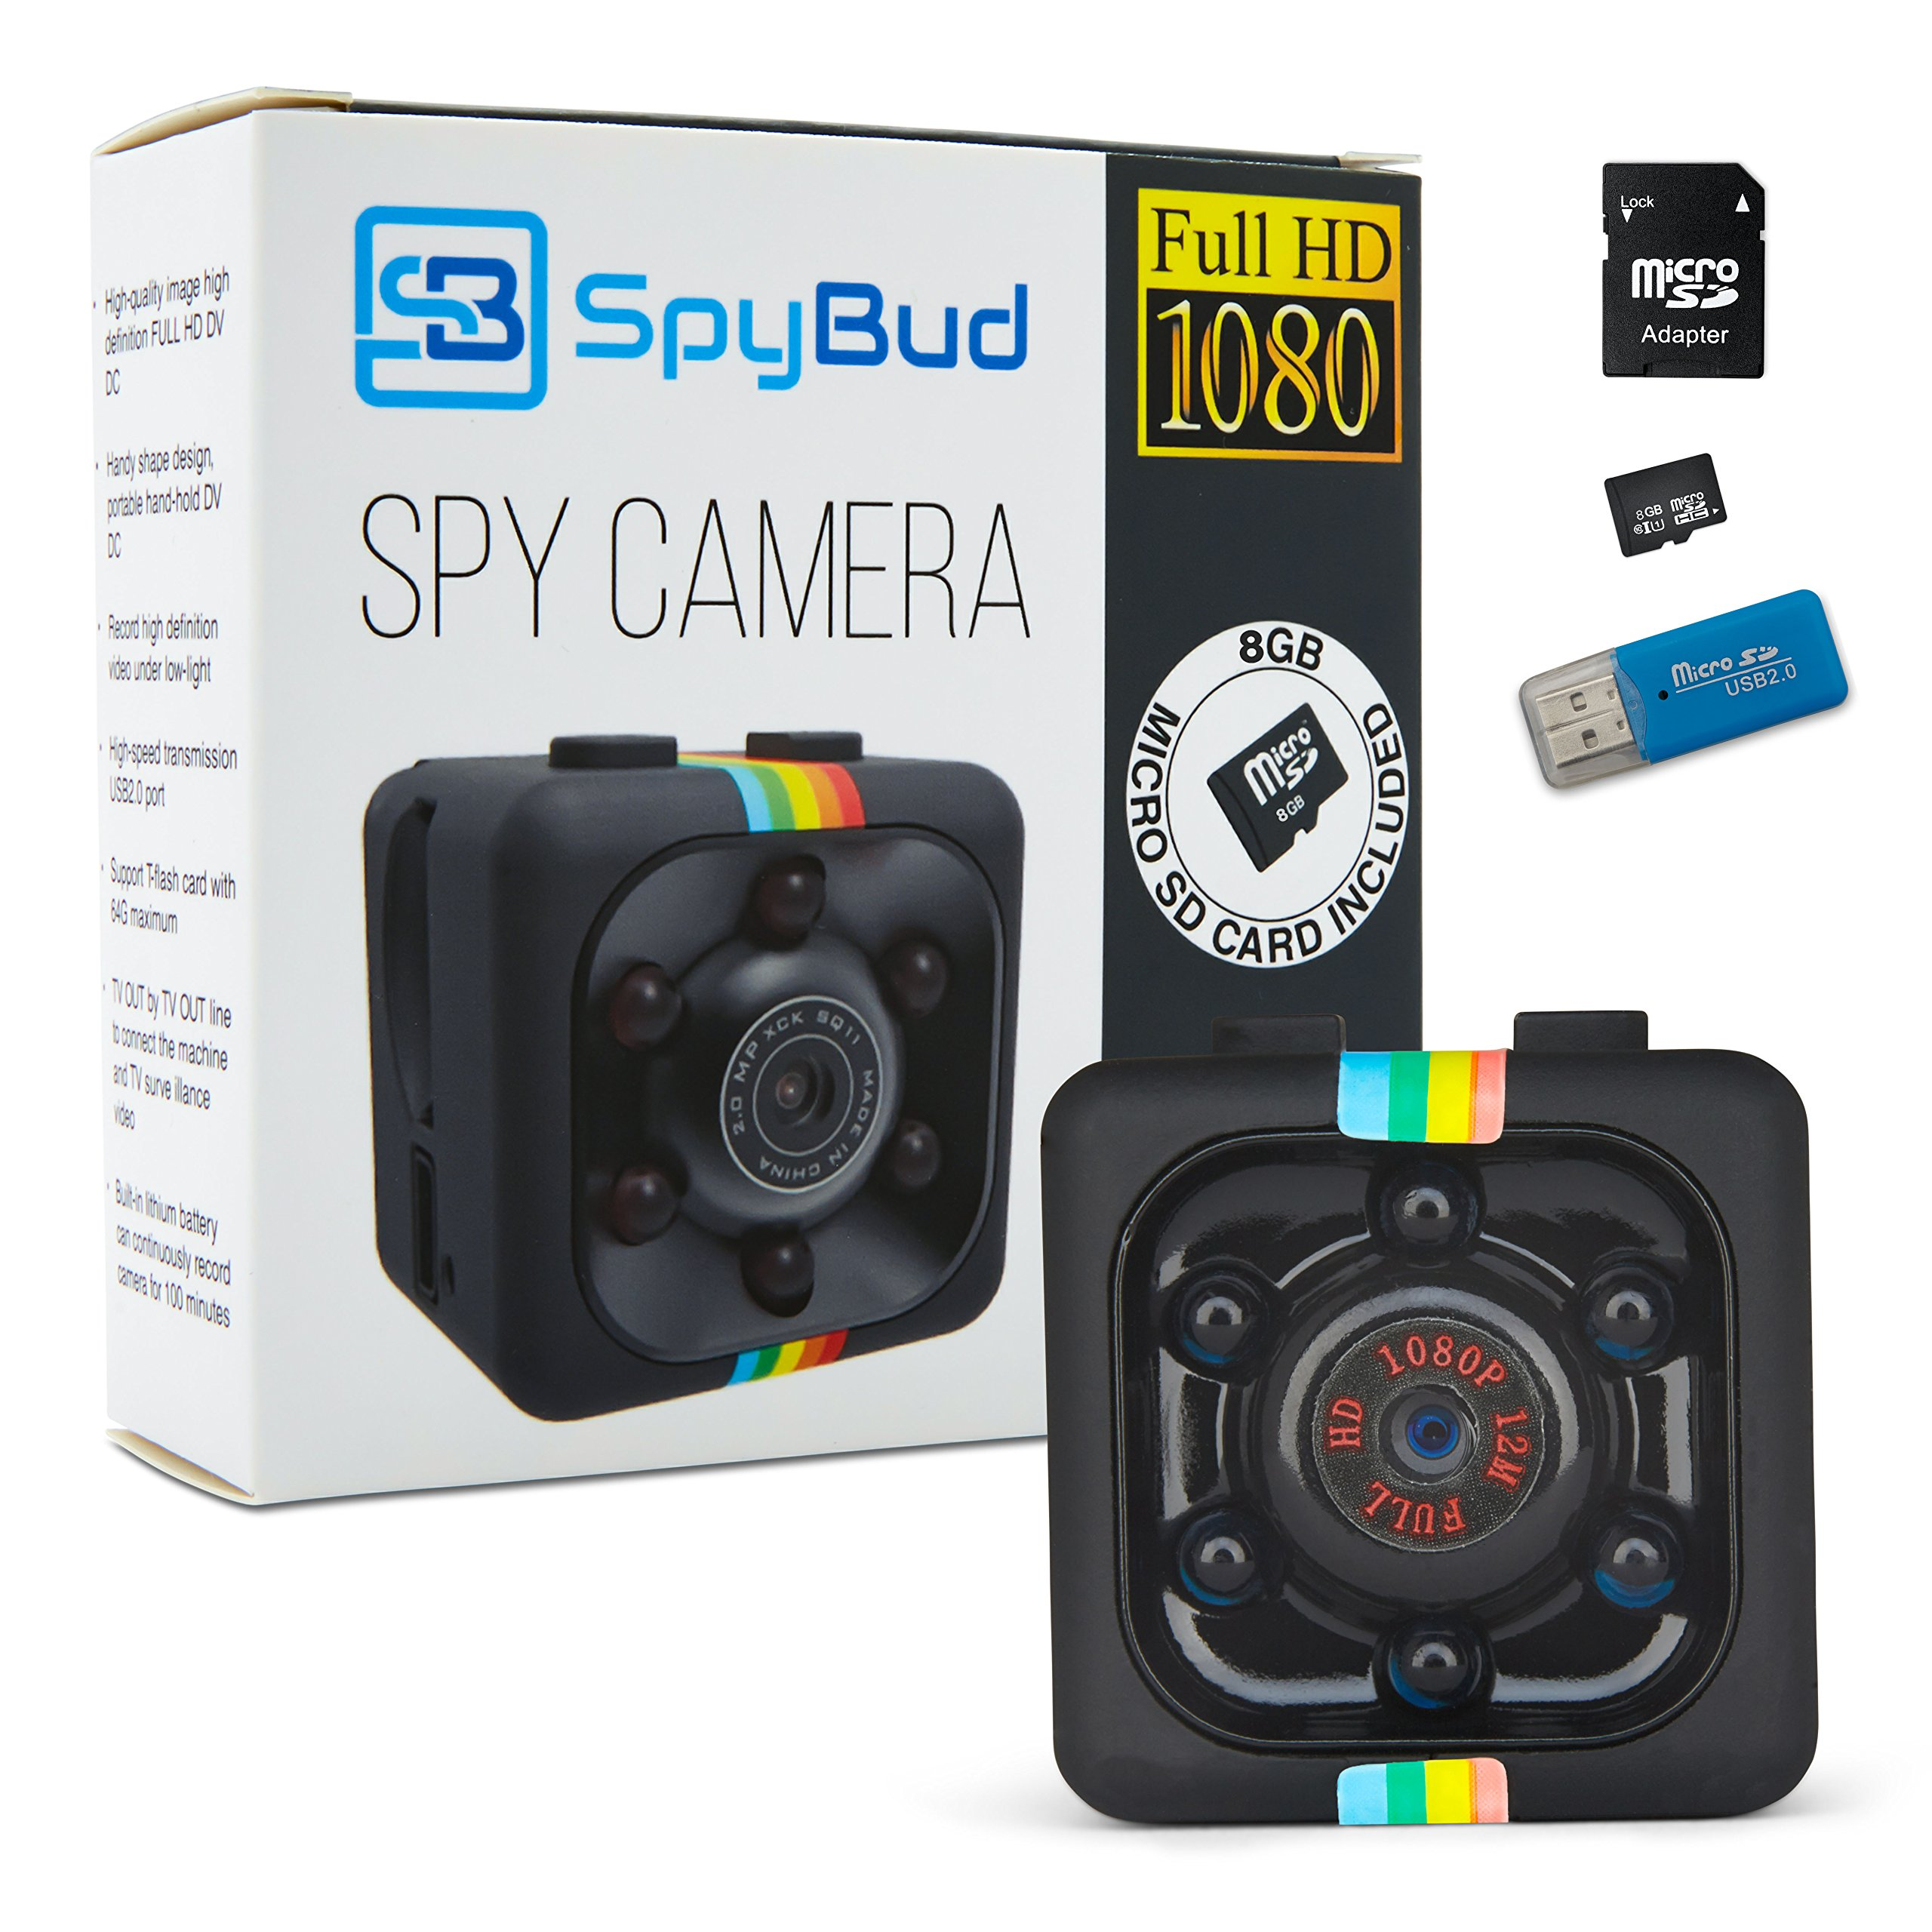 Spy Bud HD Hidden Mini Spy Camera SQ11 - Portable Motion Detection - Night Vision - For Drone, Car, Home & Office - With 8GB SD Card, memory Card Adapter & Card Reader by Spy Bud